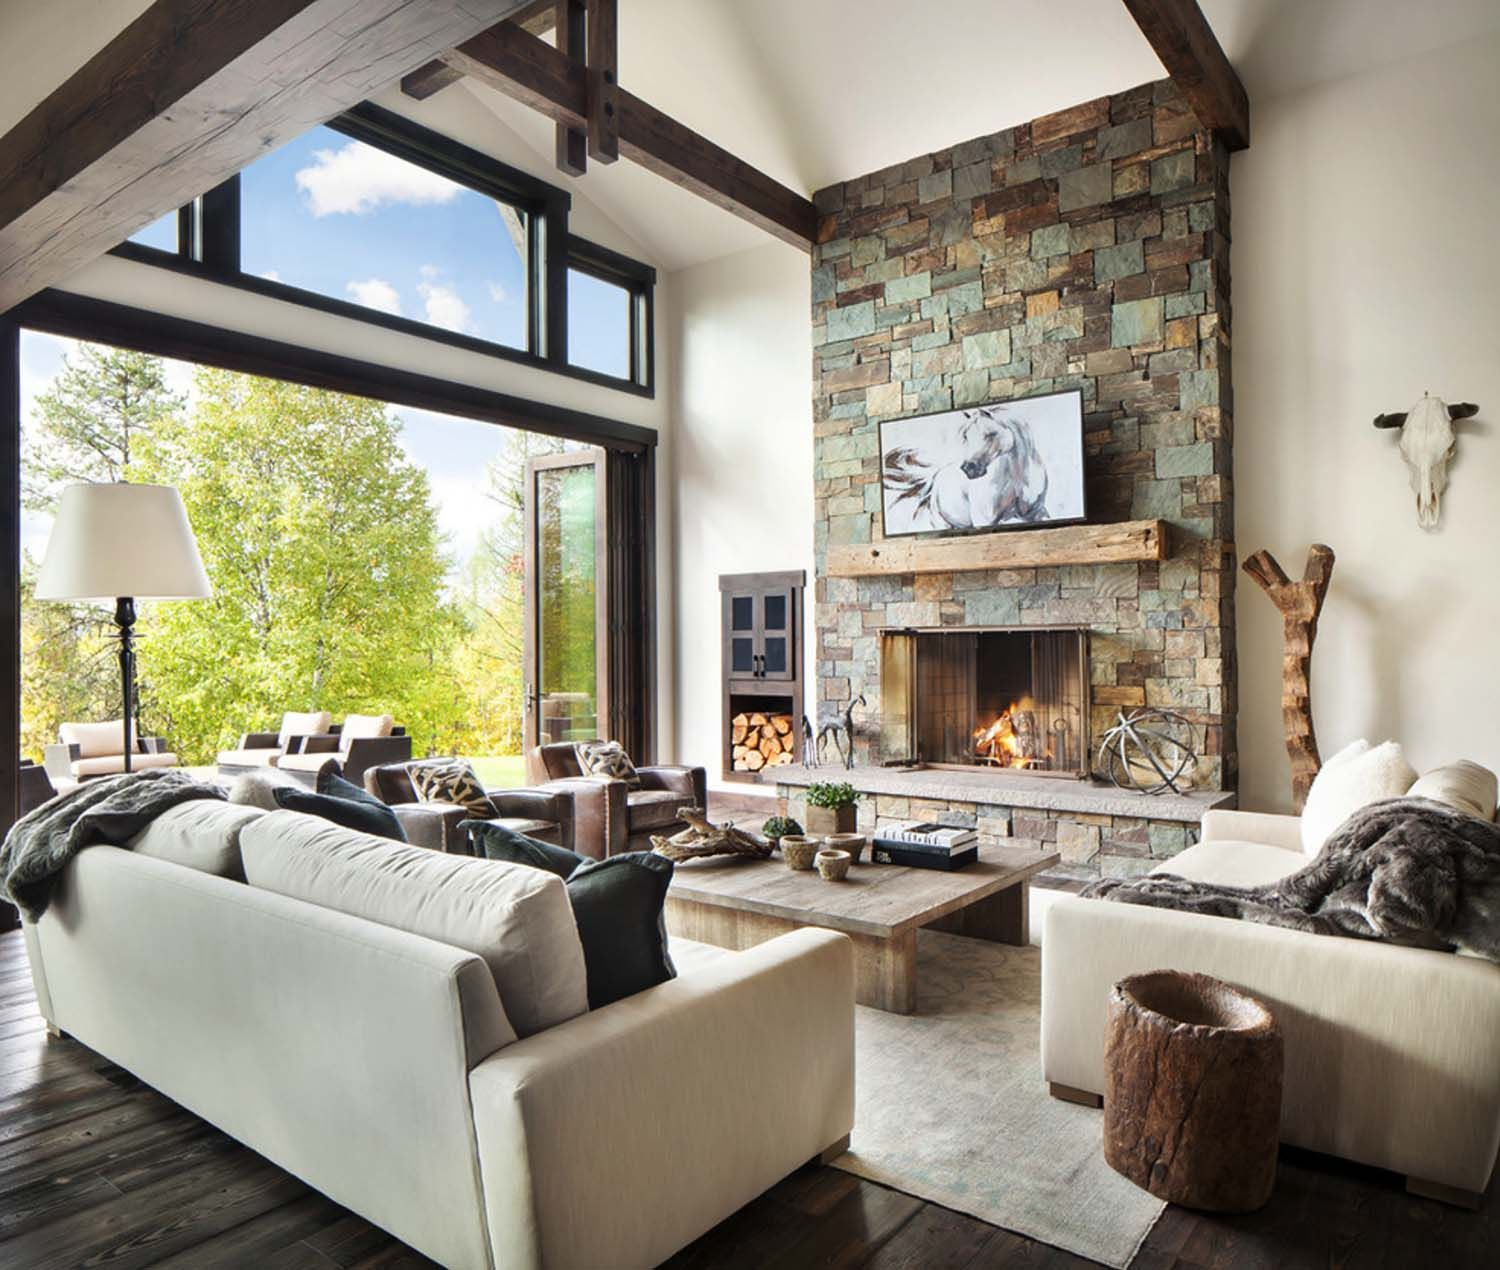 Home Design Ideas Pictures: Rustic-modern Dwelling Nestled In The Northern Rocky